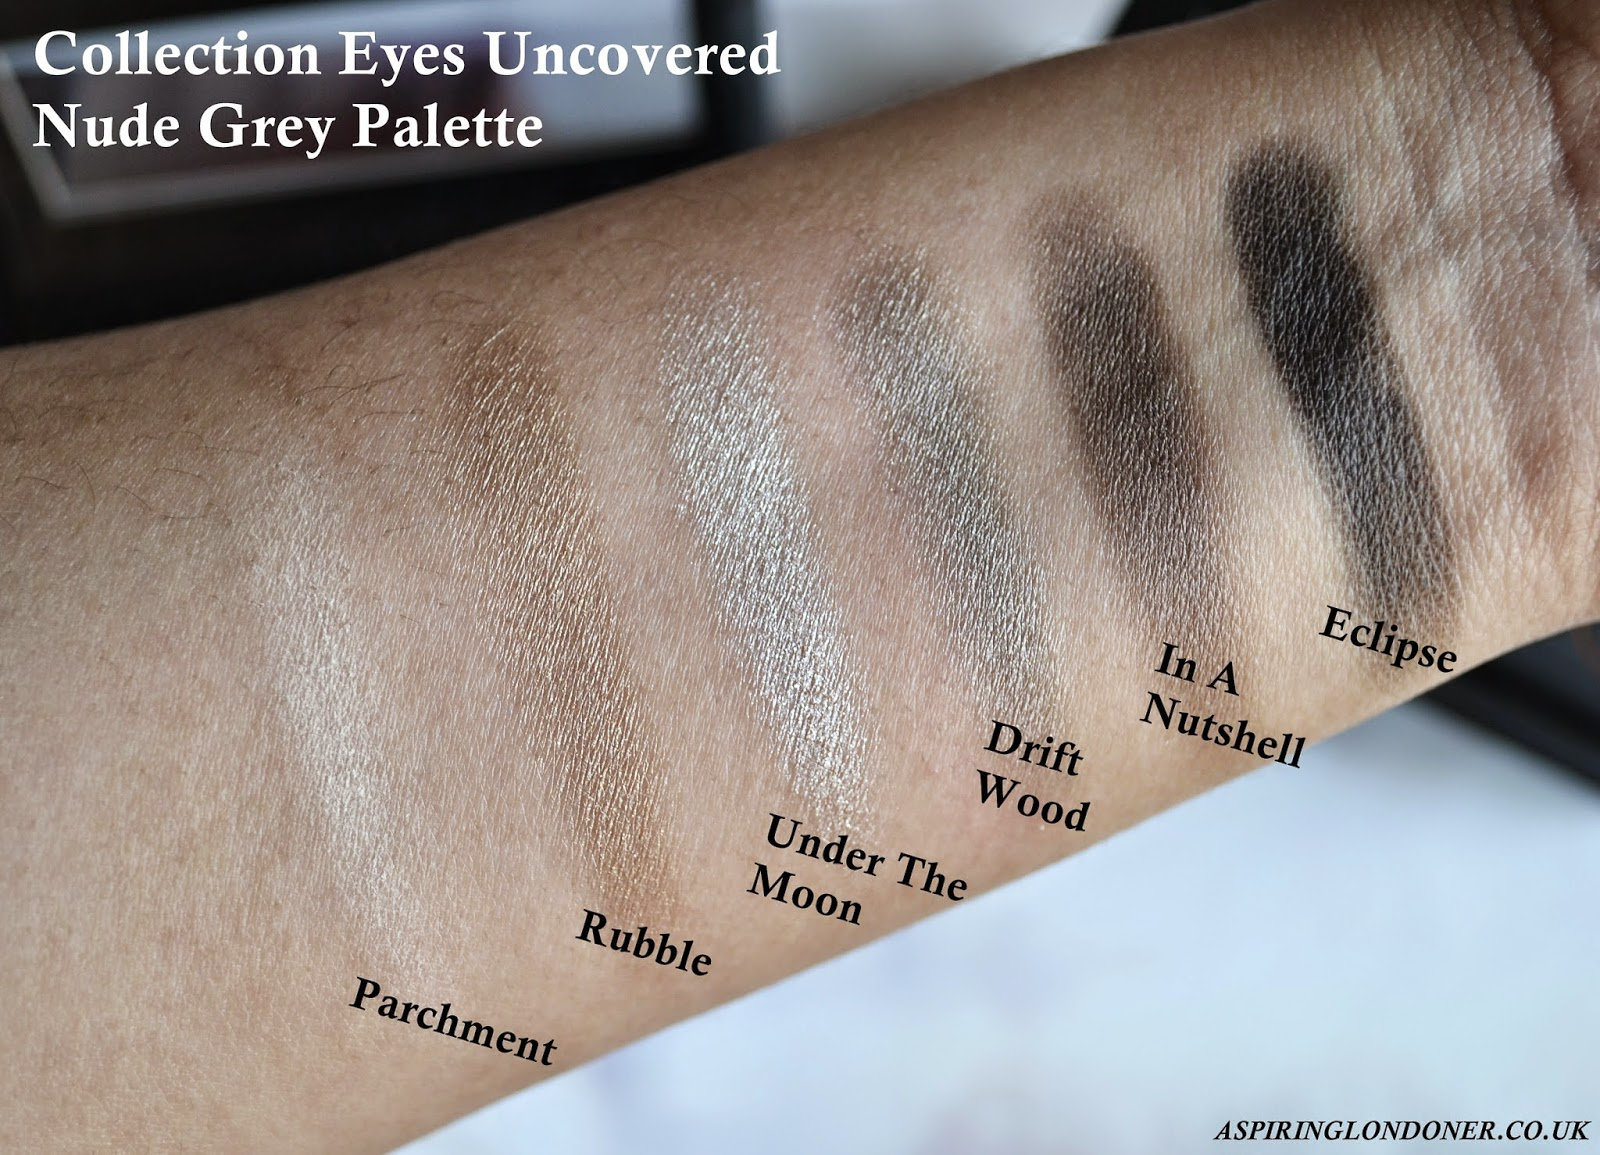 Collection Eyes Uncovered Nude Grey Palette Swatches - Aspiring Londoner